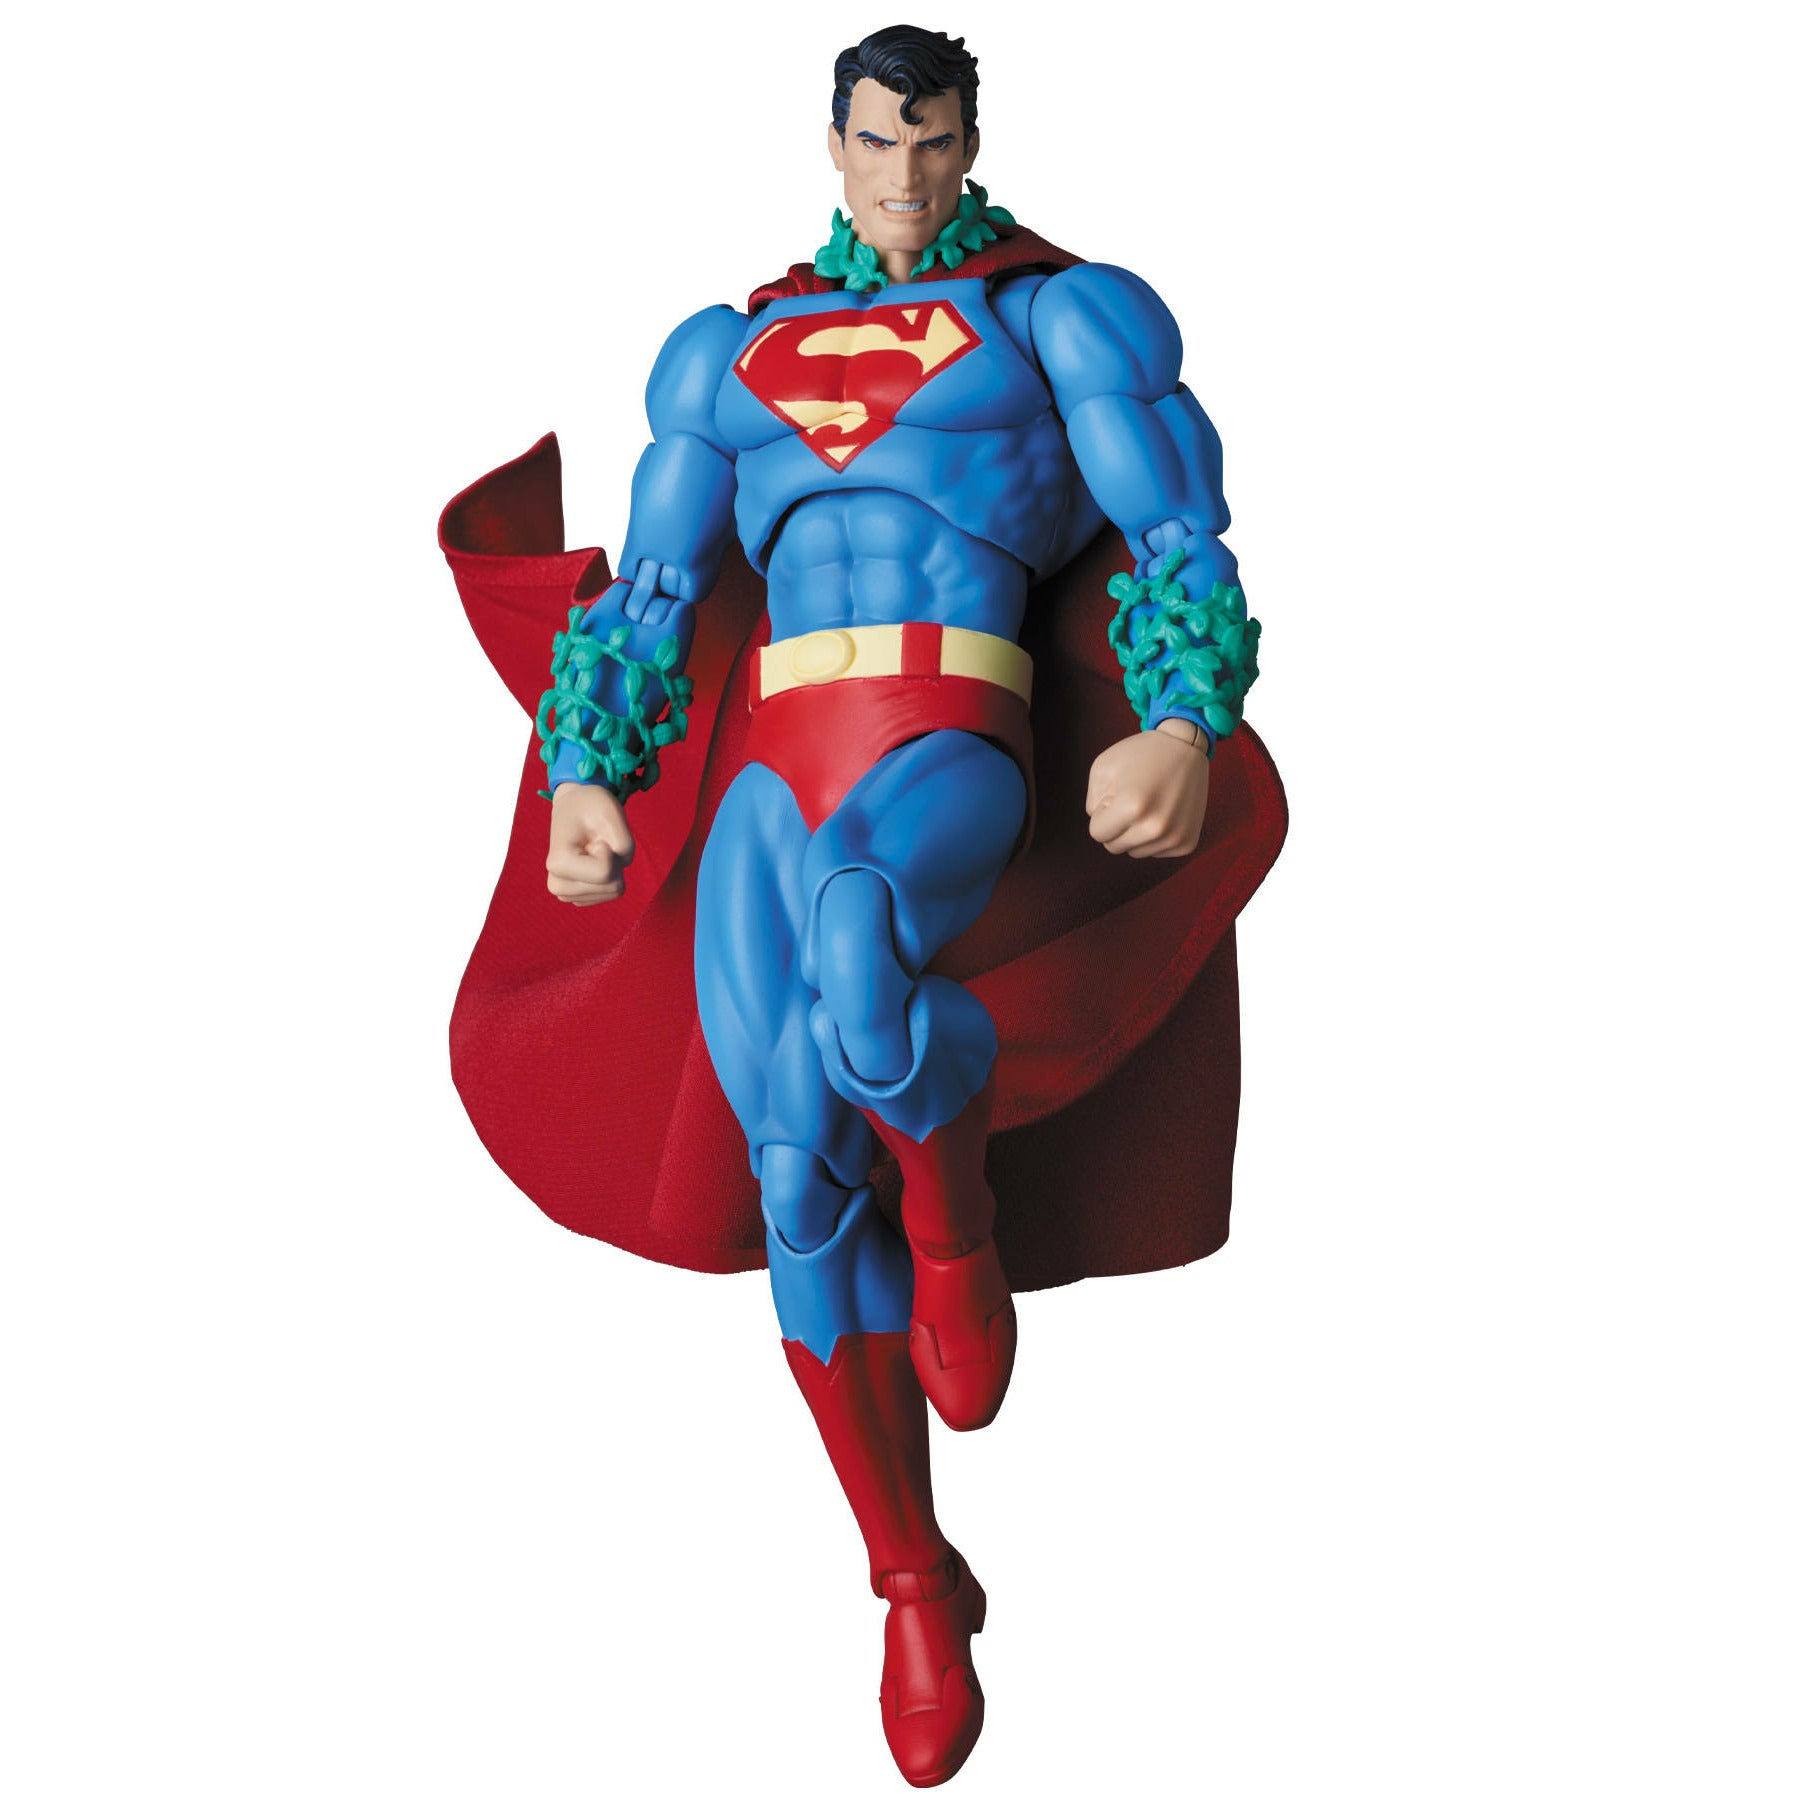 Hush Superman MAFEX Action Figure